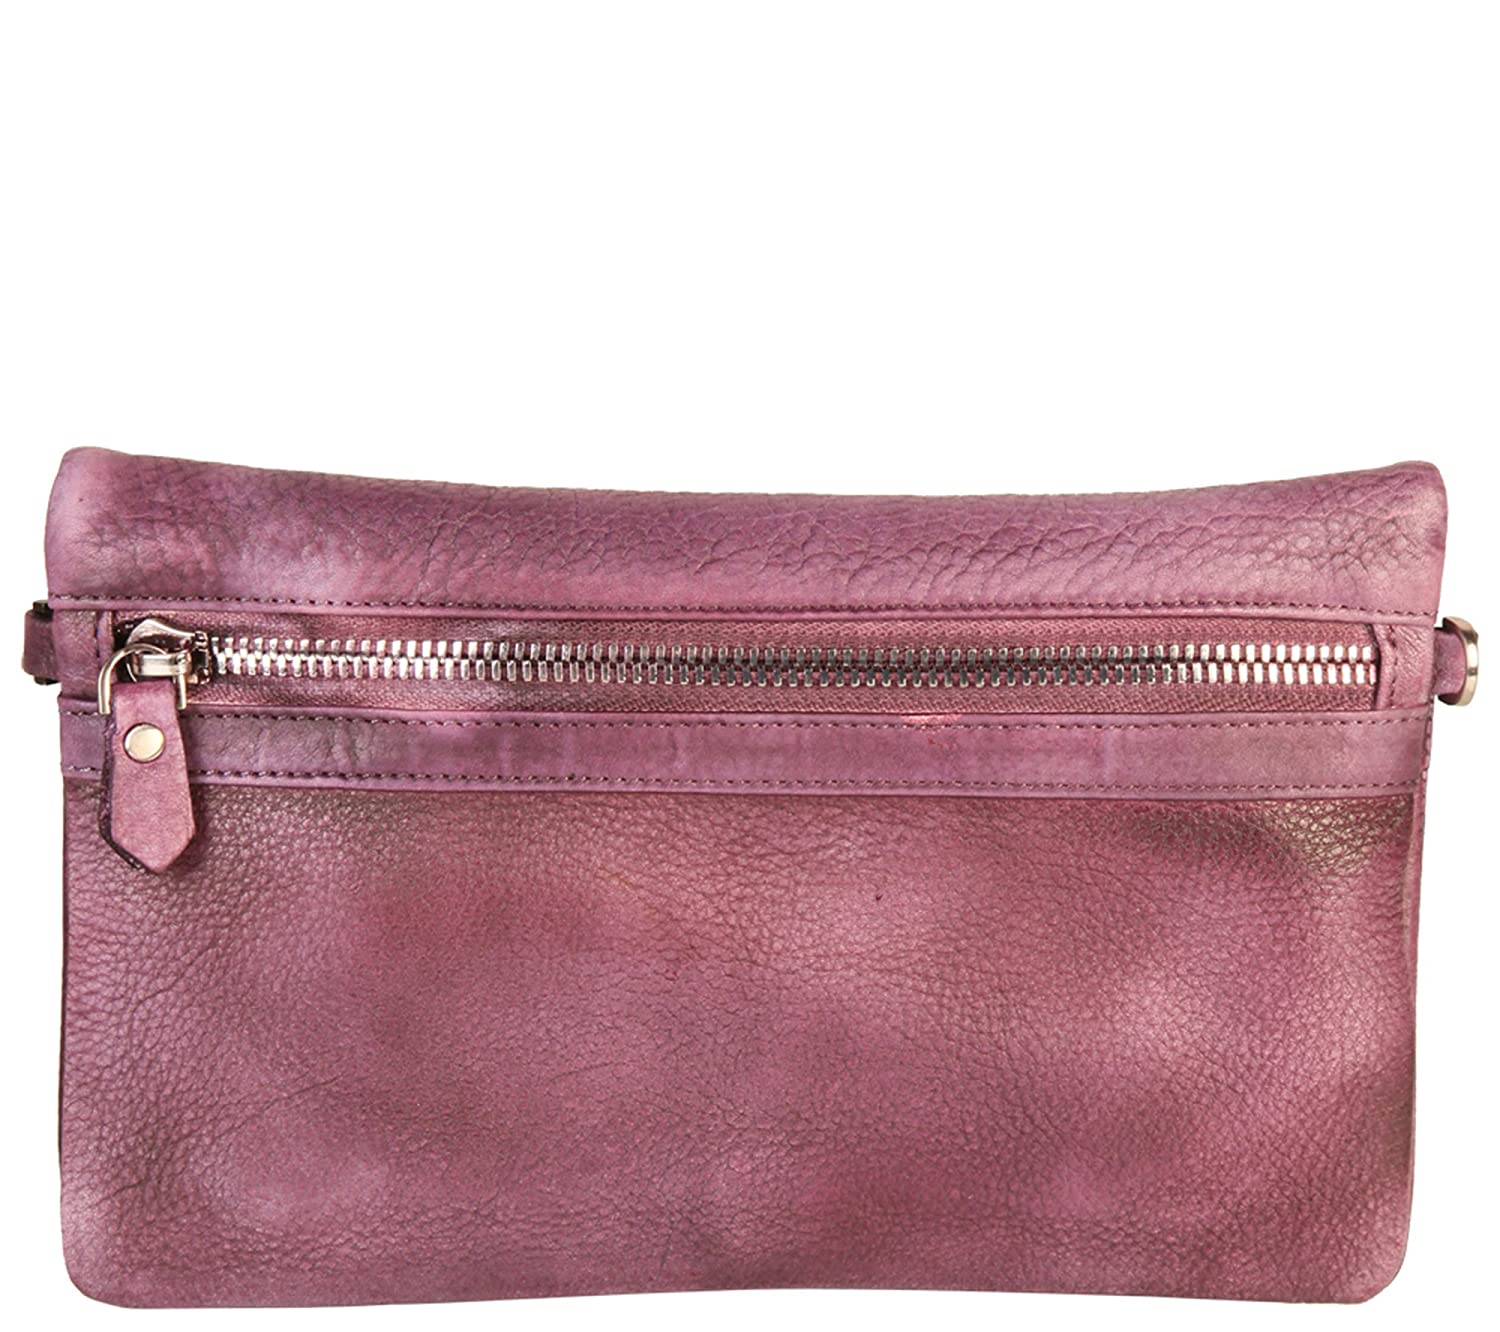 Diophy Vintage-Dye Fashion Genuine Leather Convertible Clutch 150227